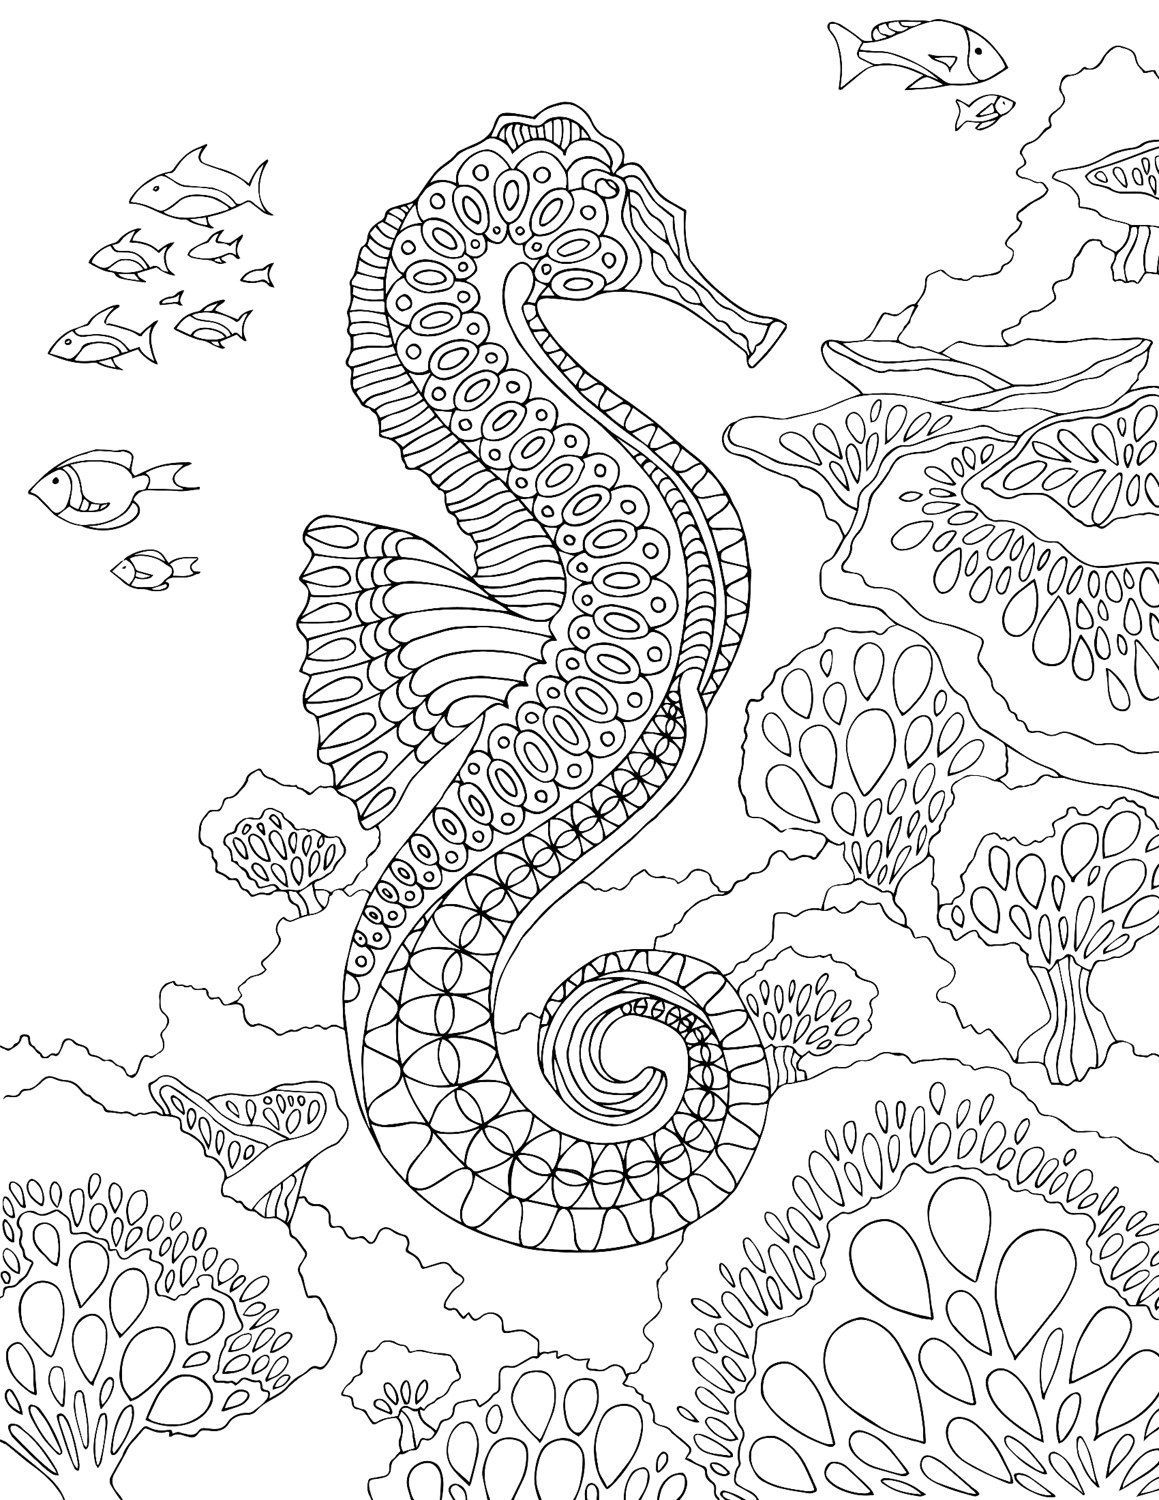 Inspirational Seahorse Coloring Pages For Adults Desenhos Para